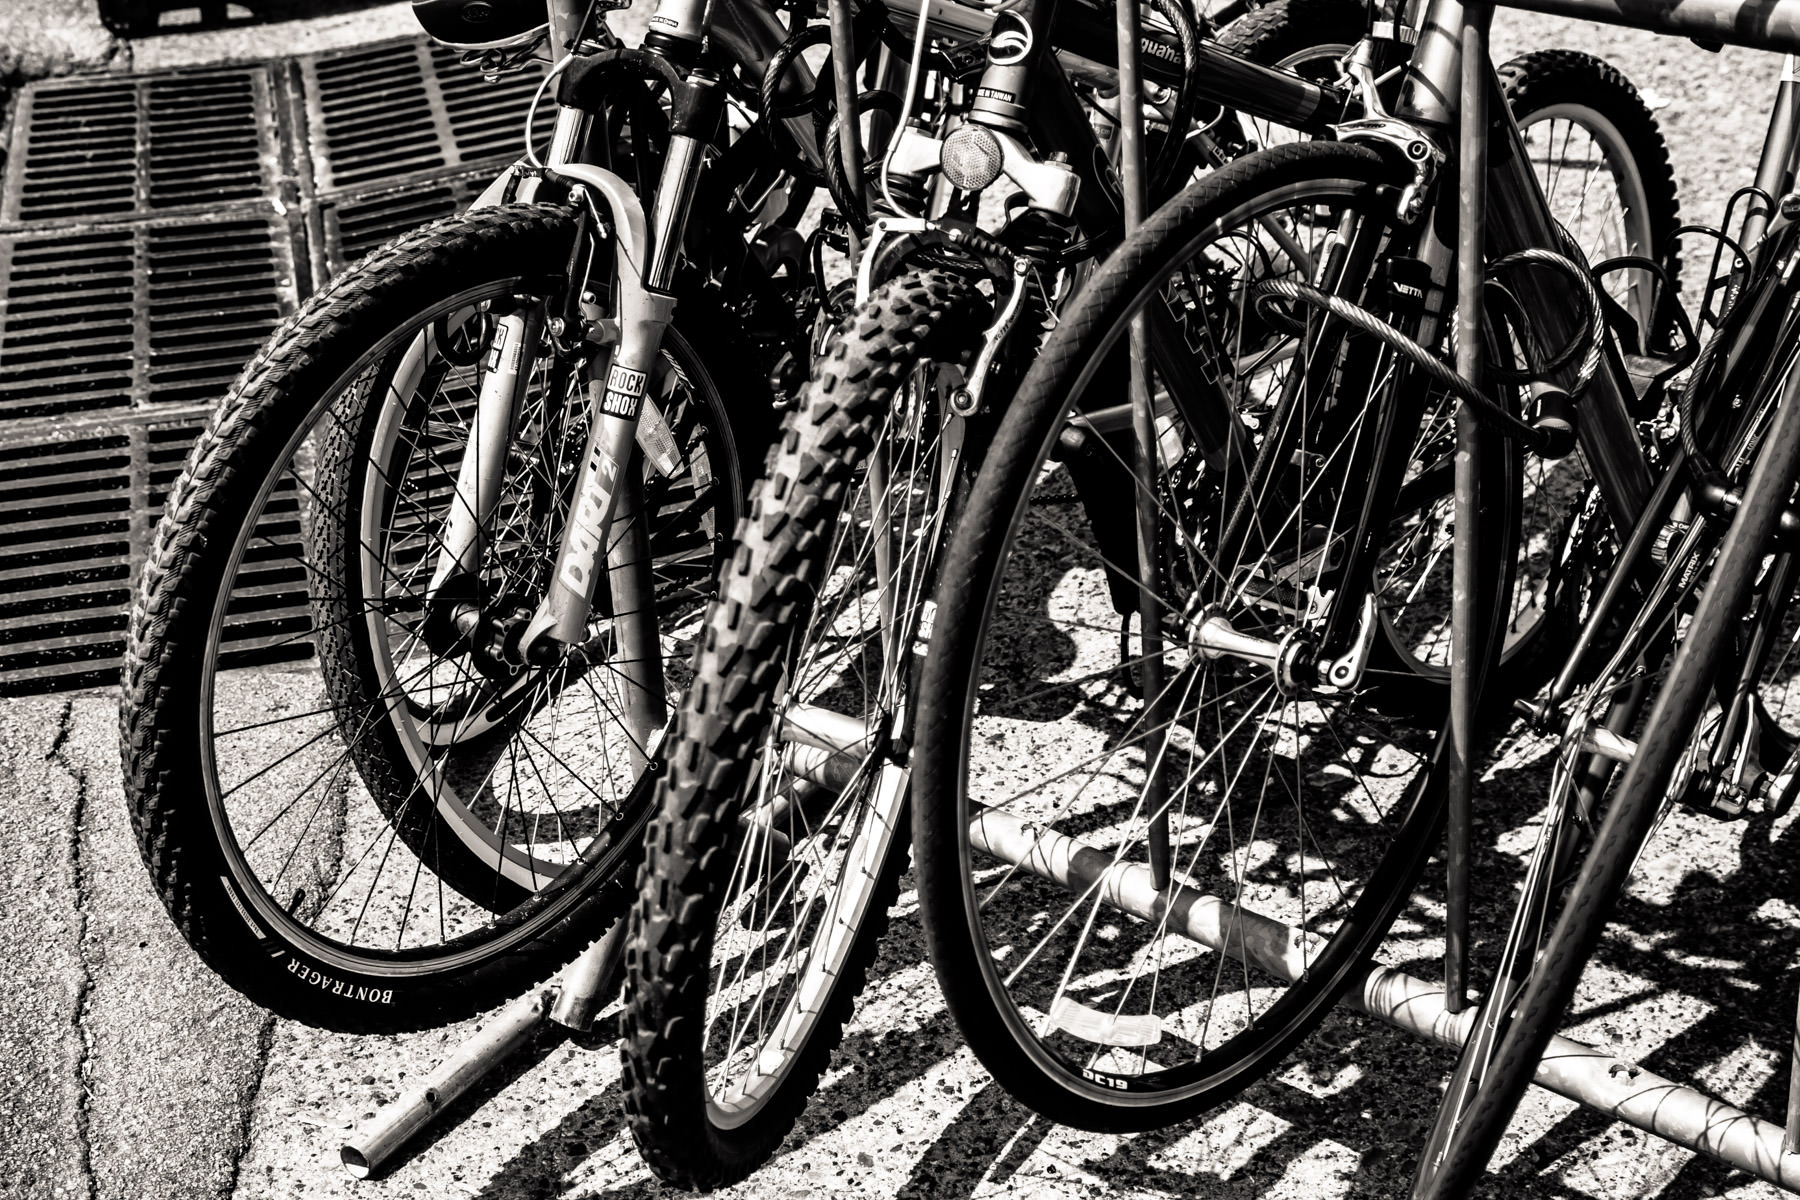 Bikes parked outside of a business in Oak Cliff, Dallas.